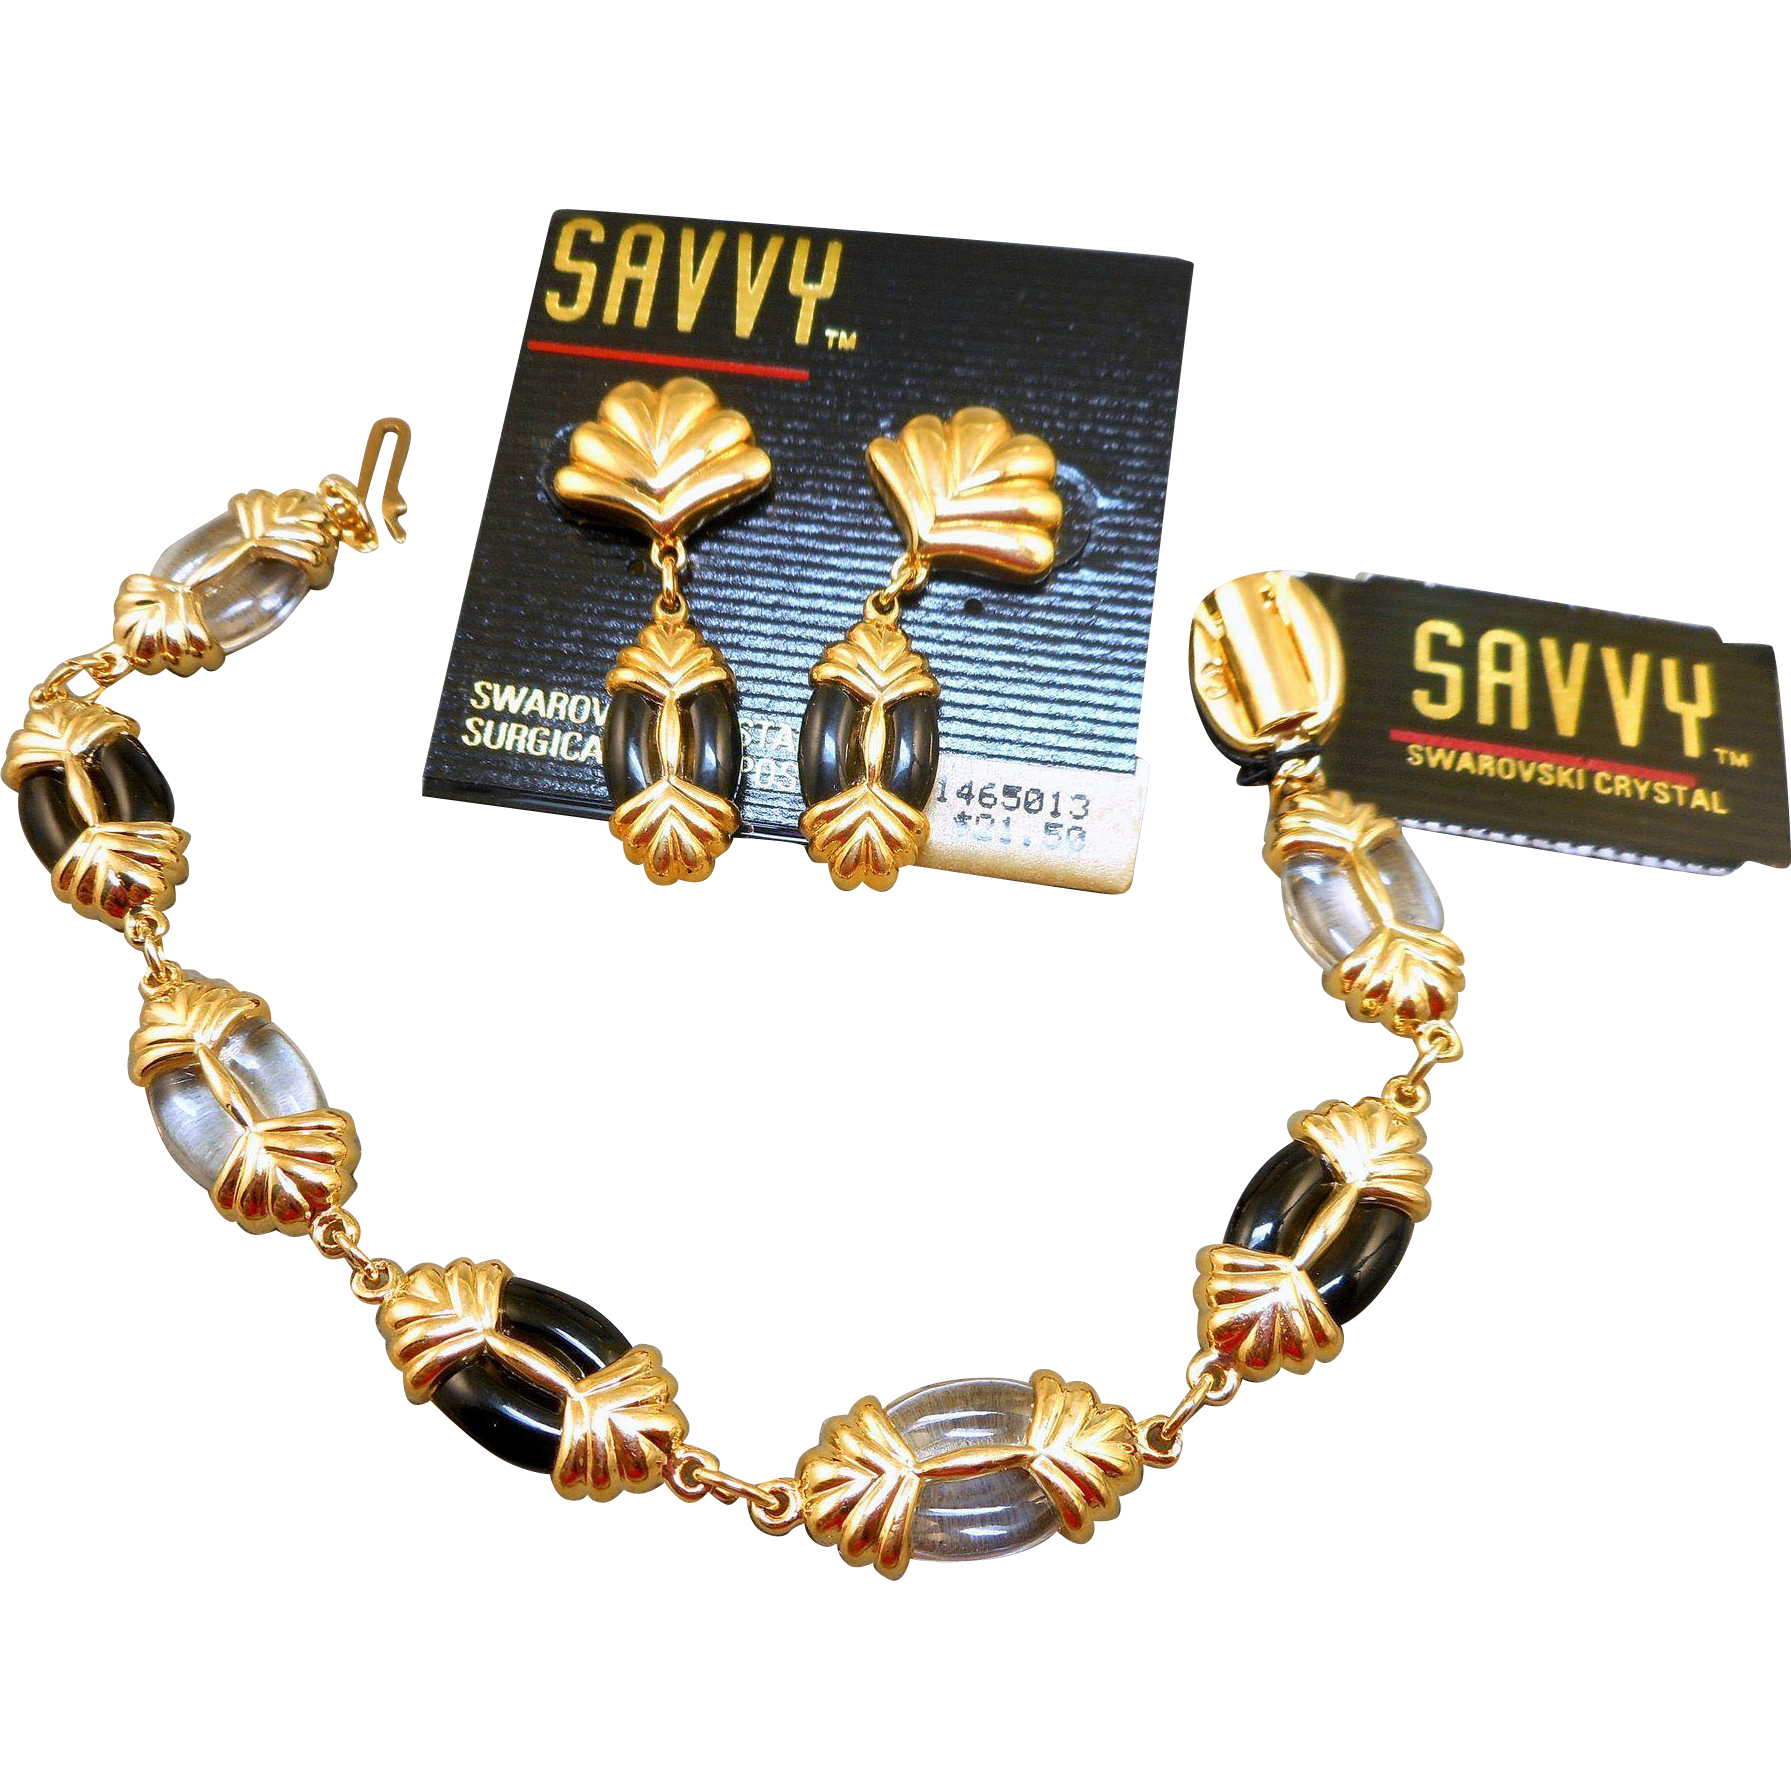 Swarovski Savvy Bracelet Earrings Set - MWT